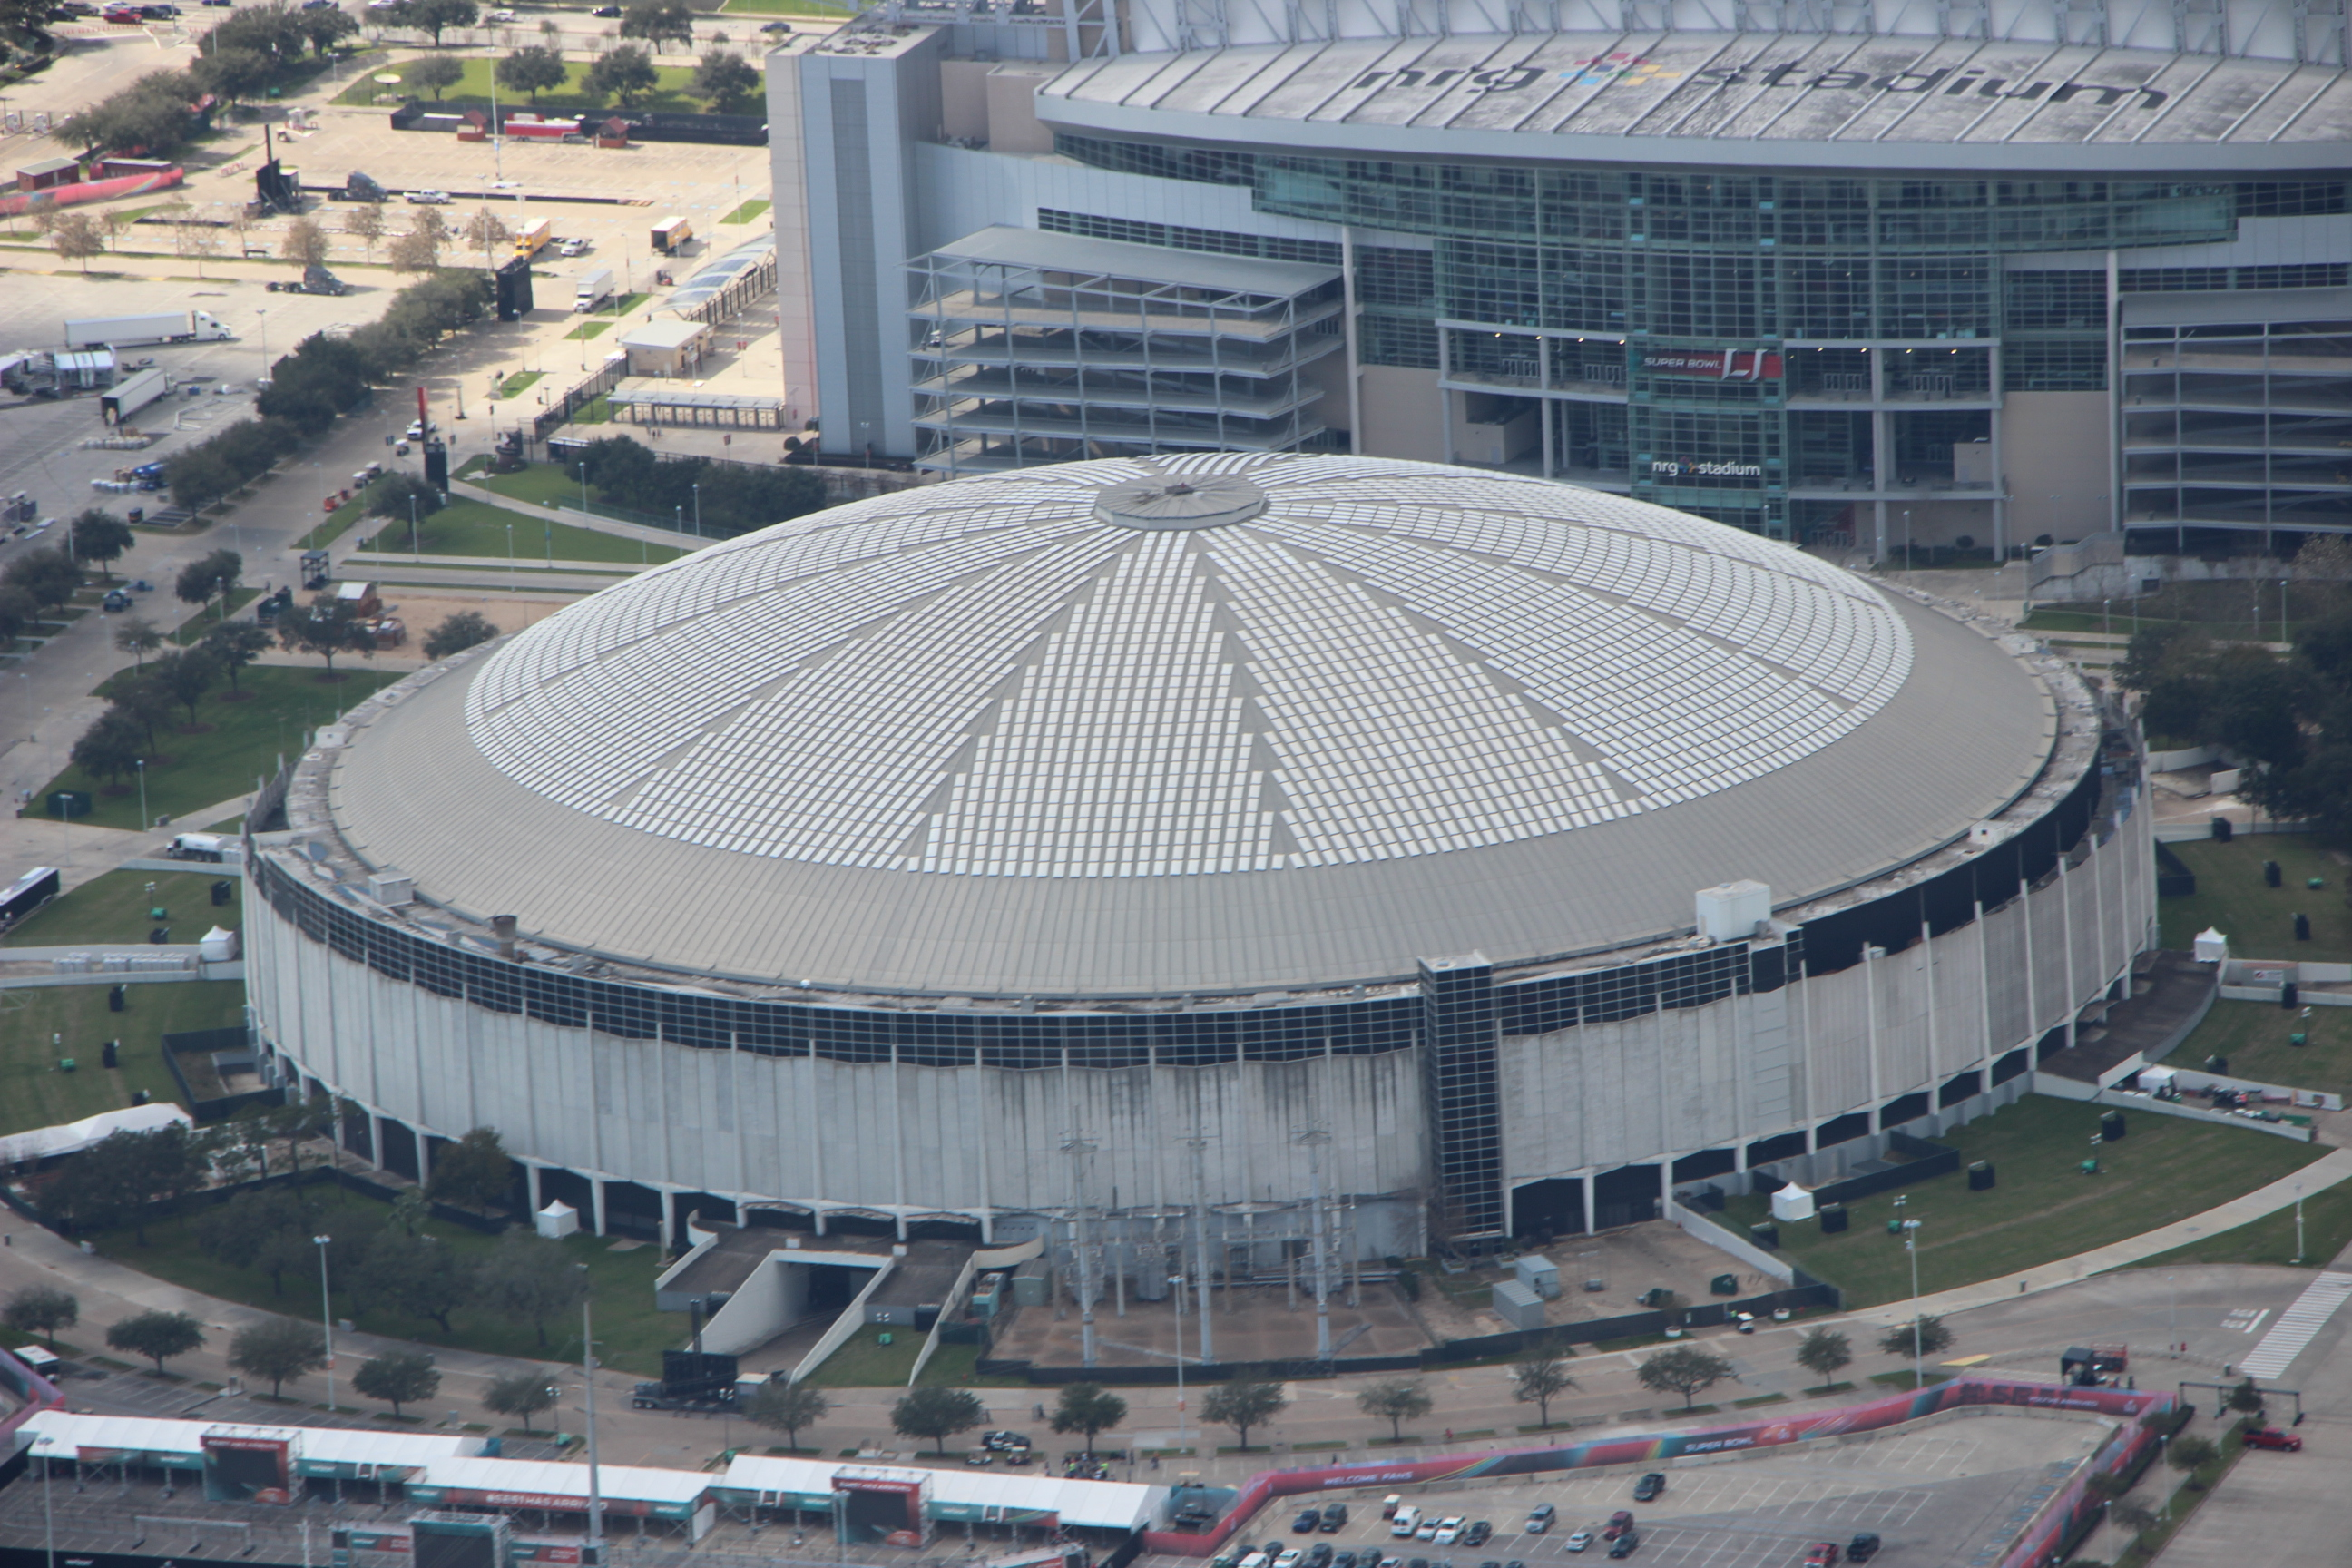 The county-owned Astrodome opened in 1965 but has been vacant for 19 years. It closed to all events in 2009.